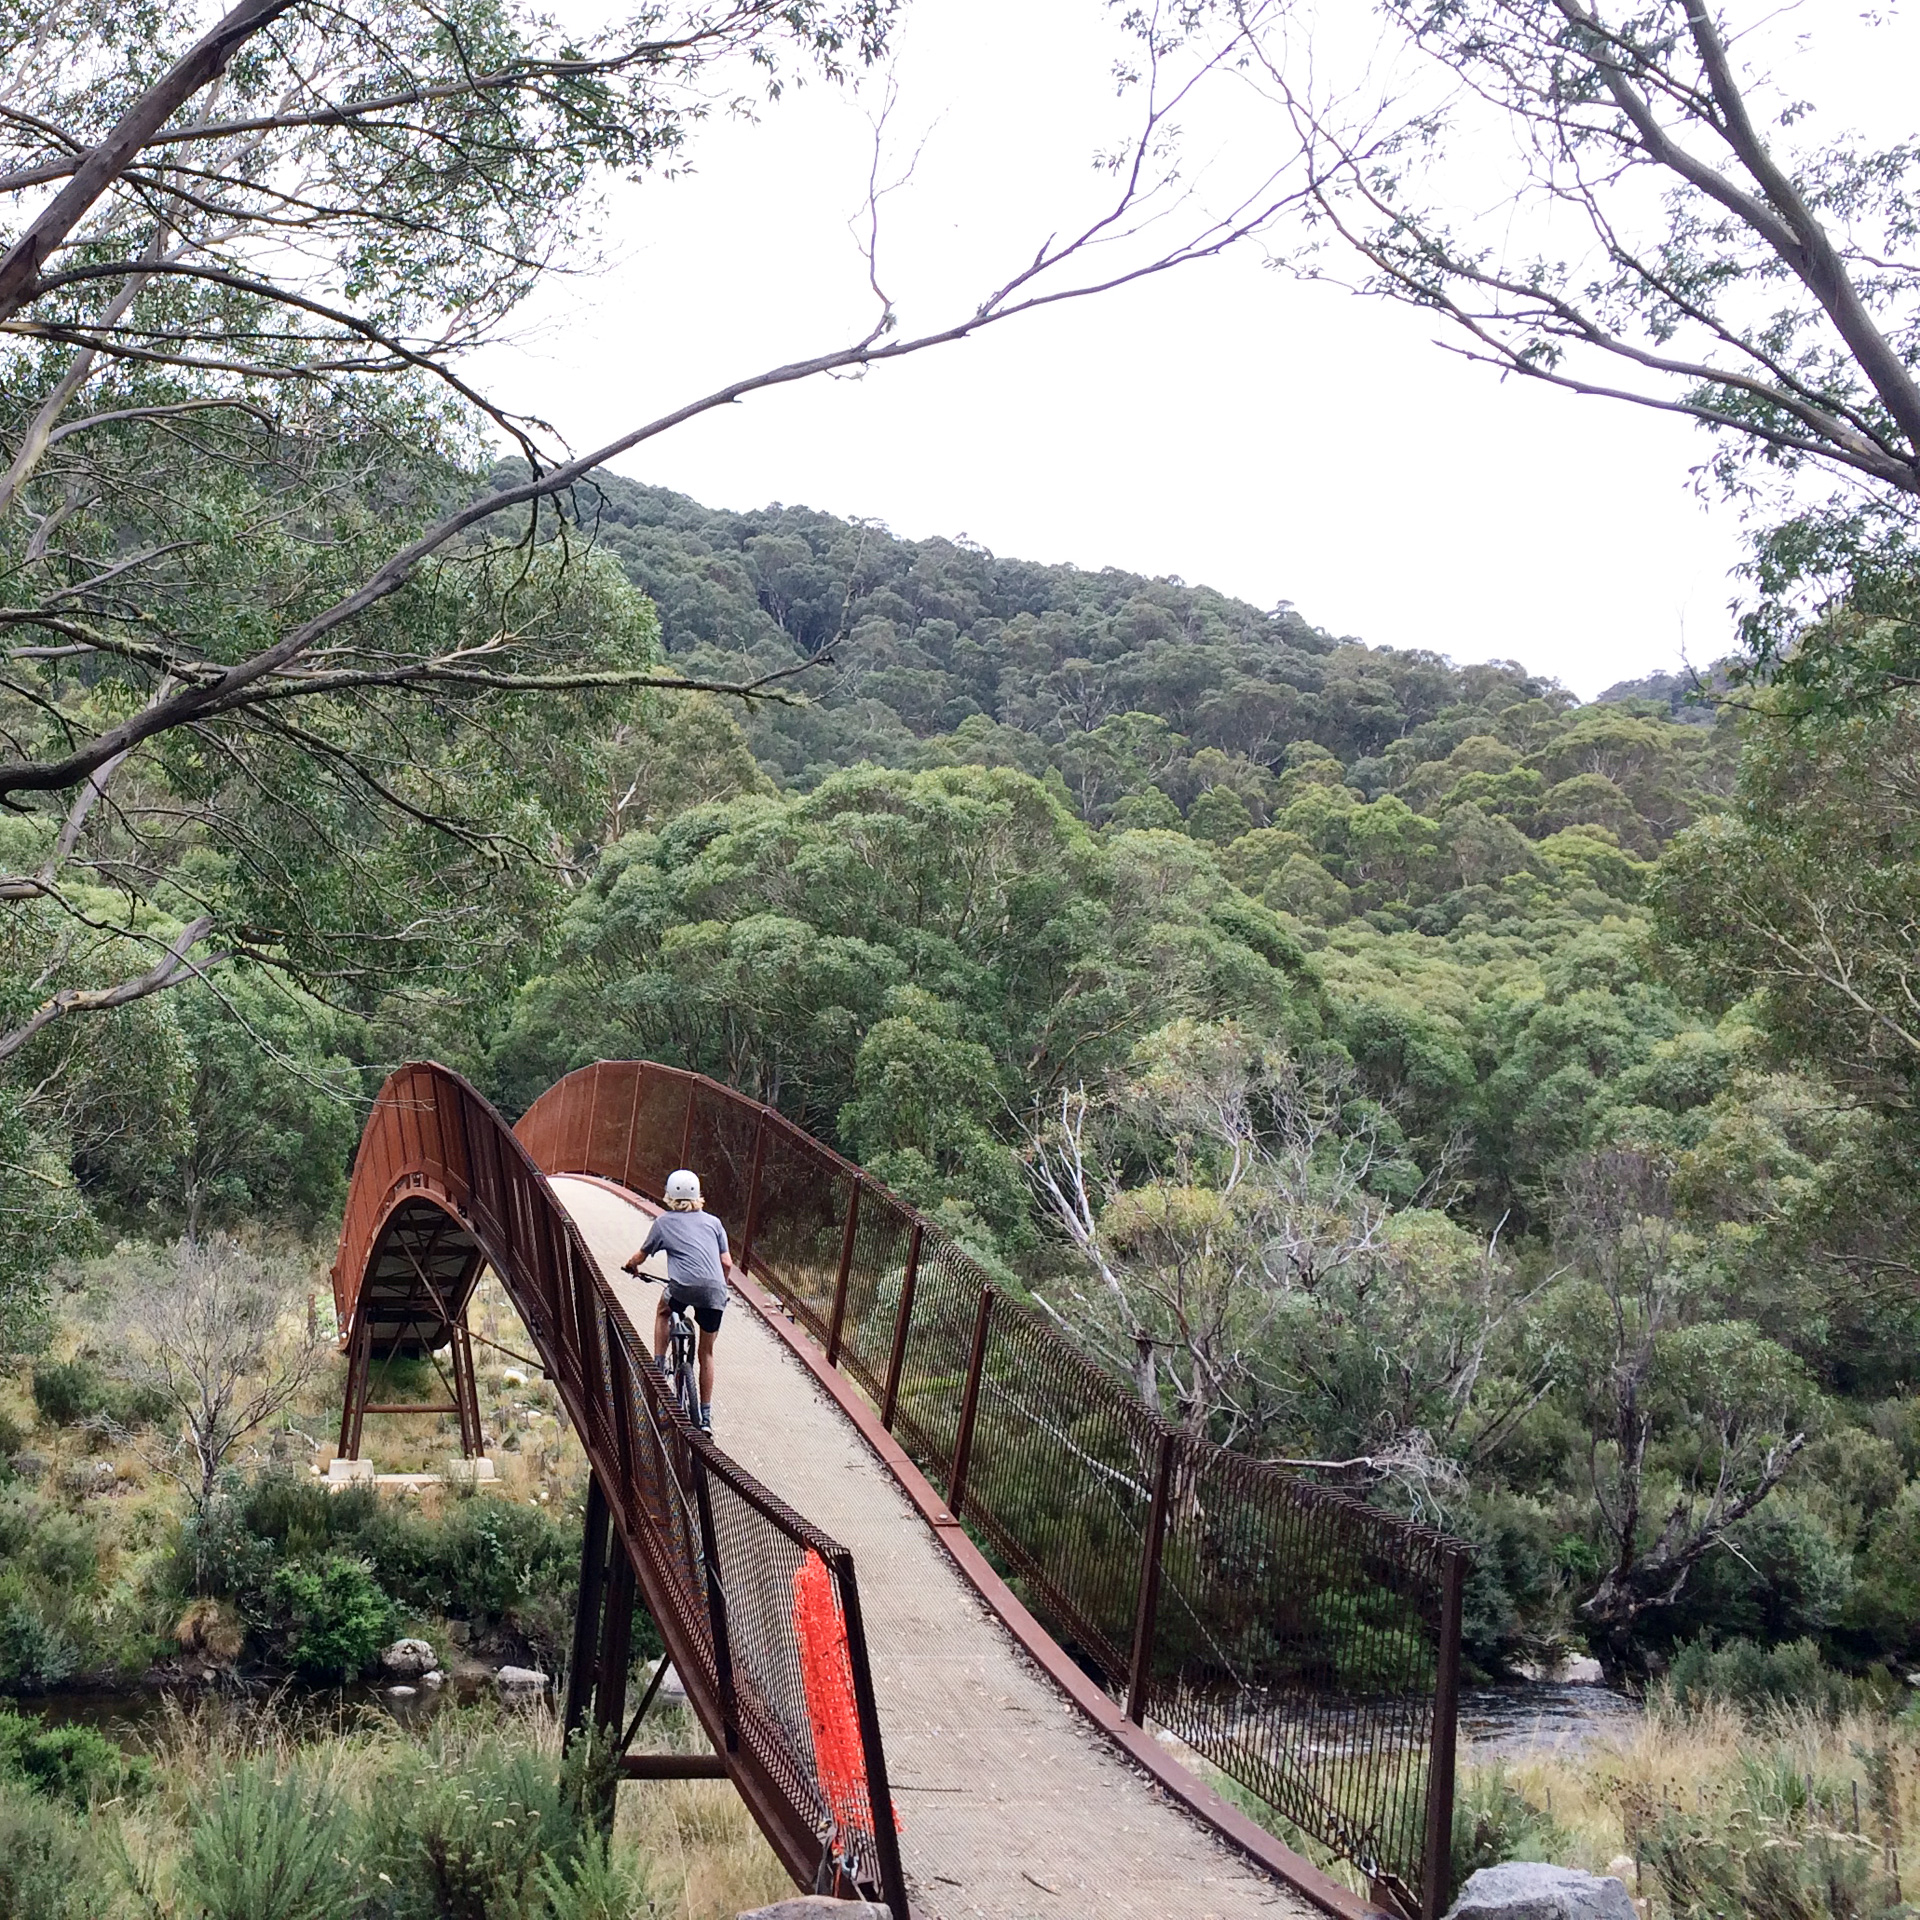 The start of the Thredbo Valley mountain bike and hiking trail starts at the front gate.